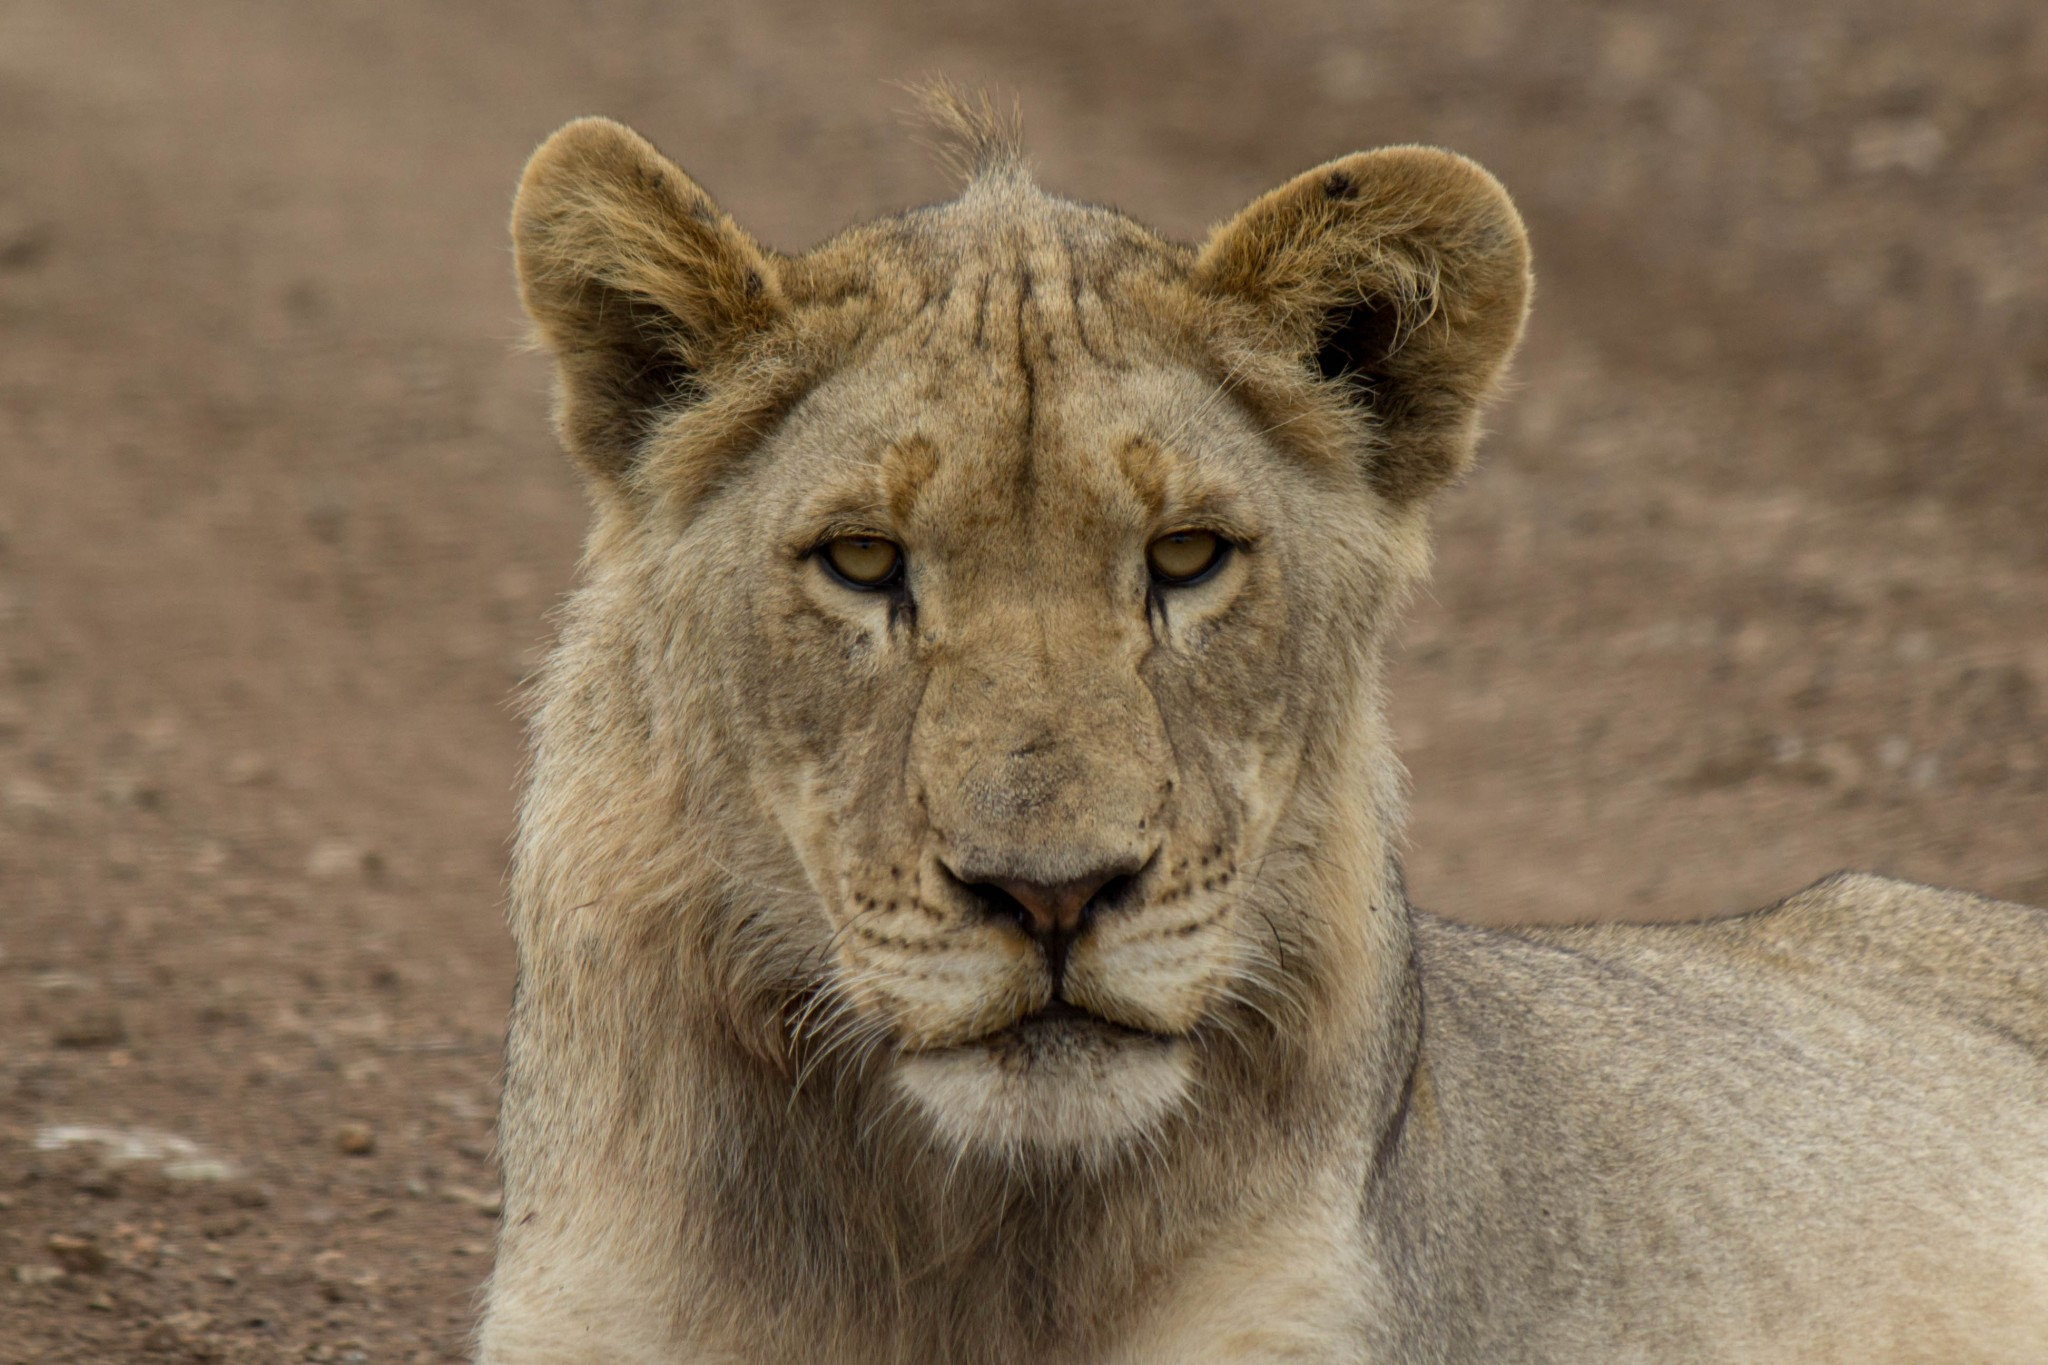 Young Male Lion @ Munyawana Game Reserve. Photo: Håvard Rosenlund